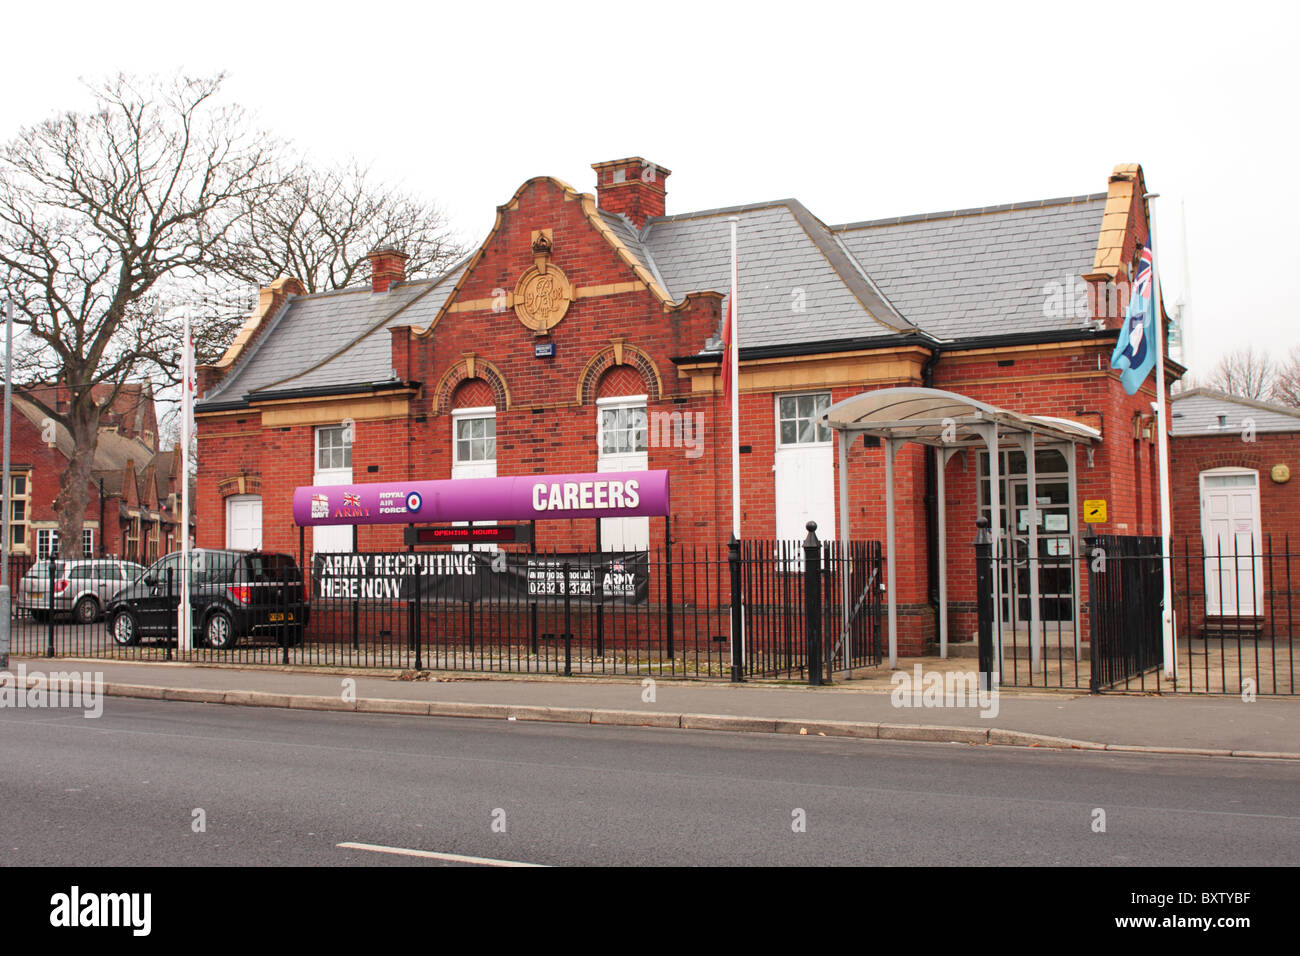 Army Royal Navy and RAF Careers Office Portsmouth UK Stock Photo